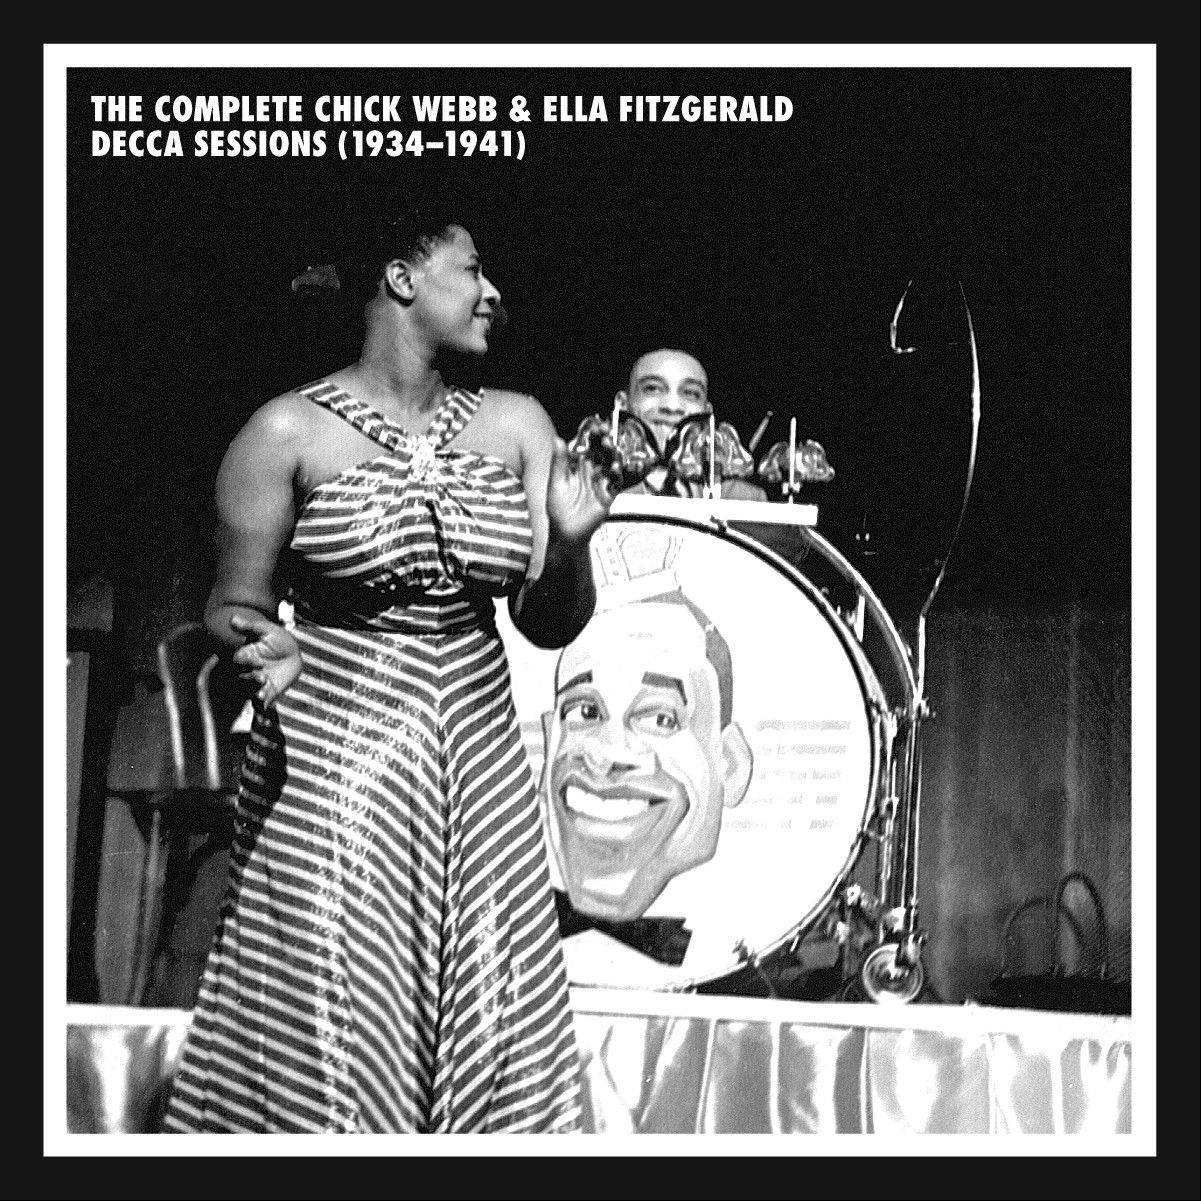 """The complete Chick Webb & Ella Fitzgerald Decca Sessions"""